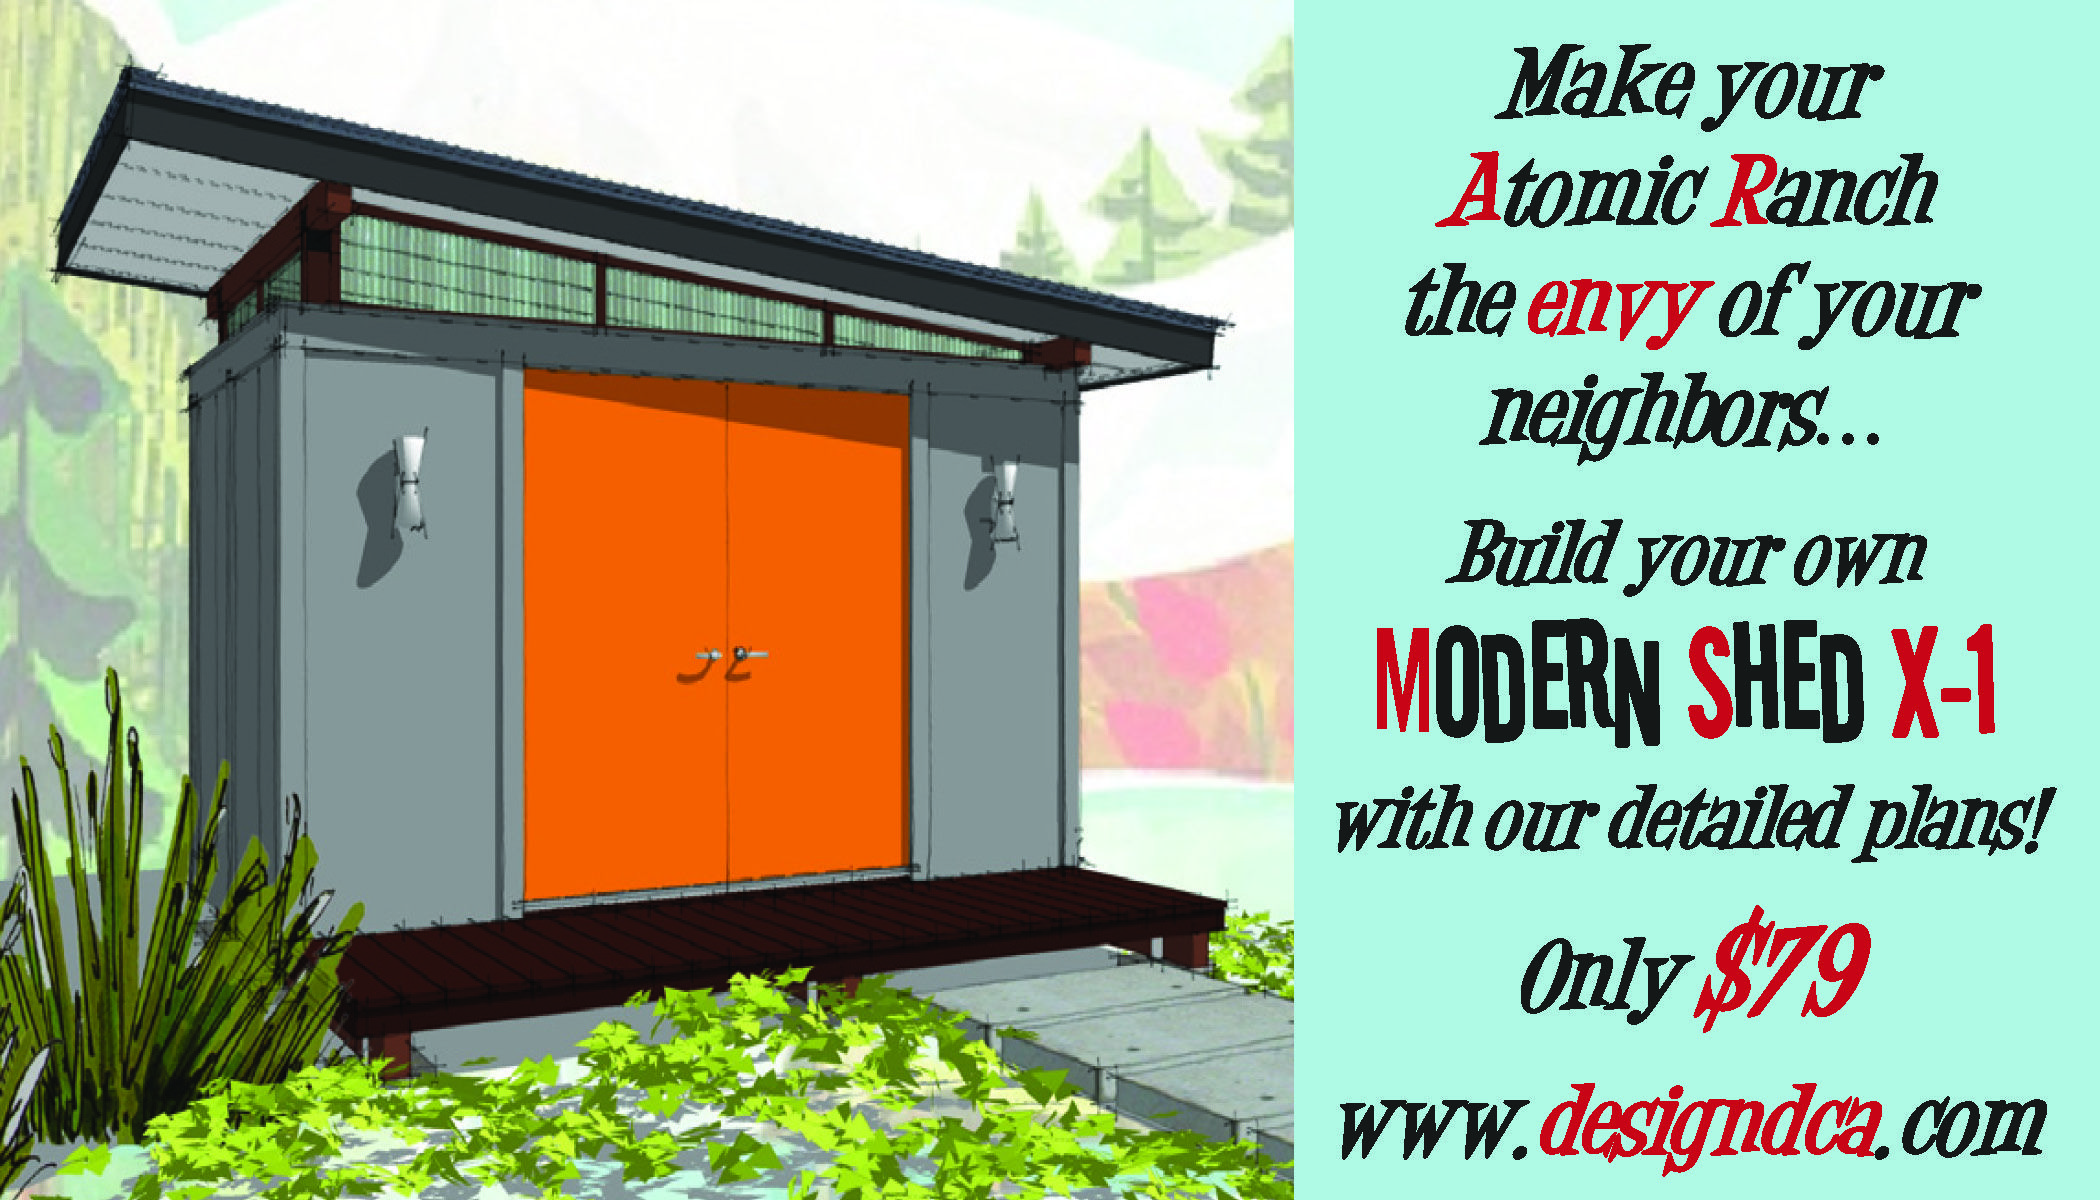 Atomic ranch mid century modern inspired shed http www for Mid century modern shed